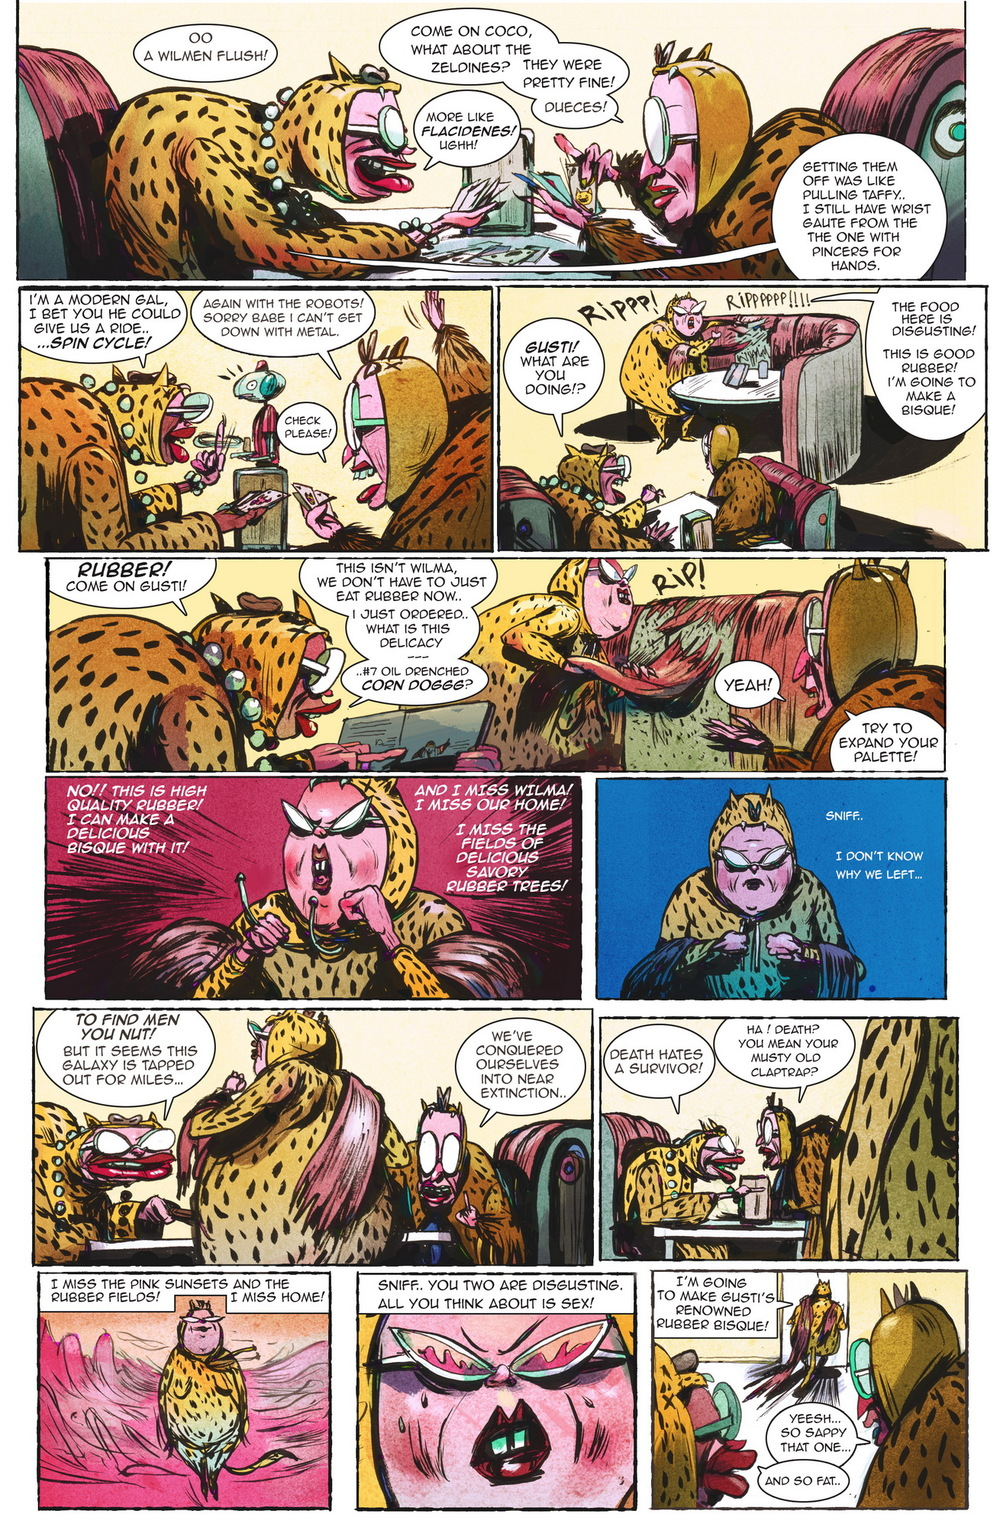 12 issue 2 page 26.jpg